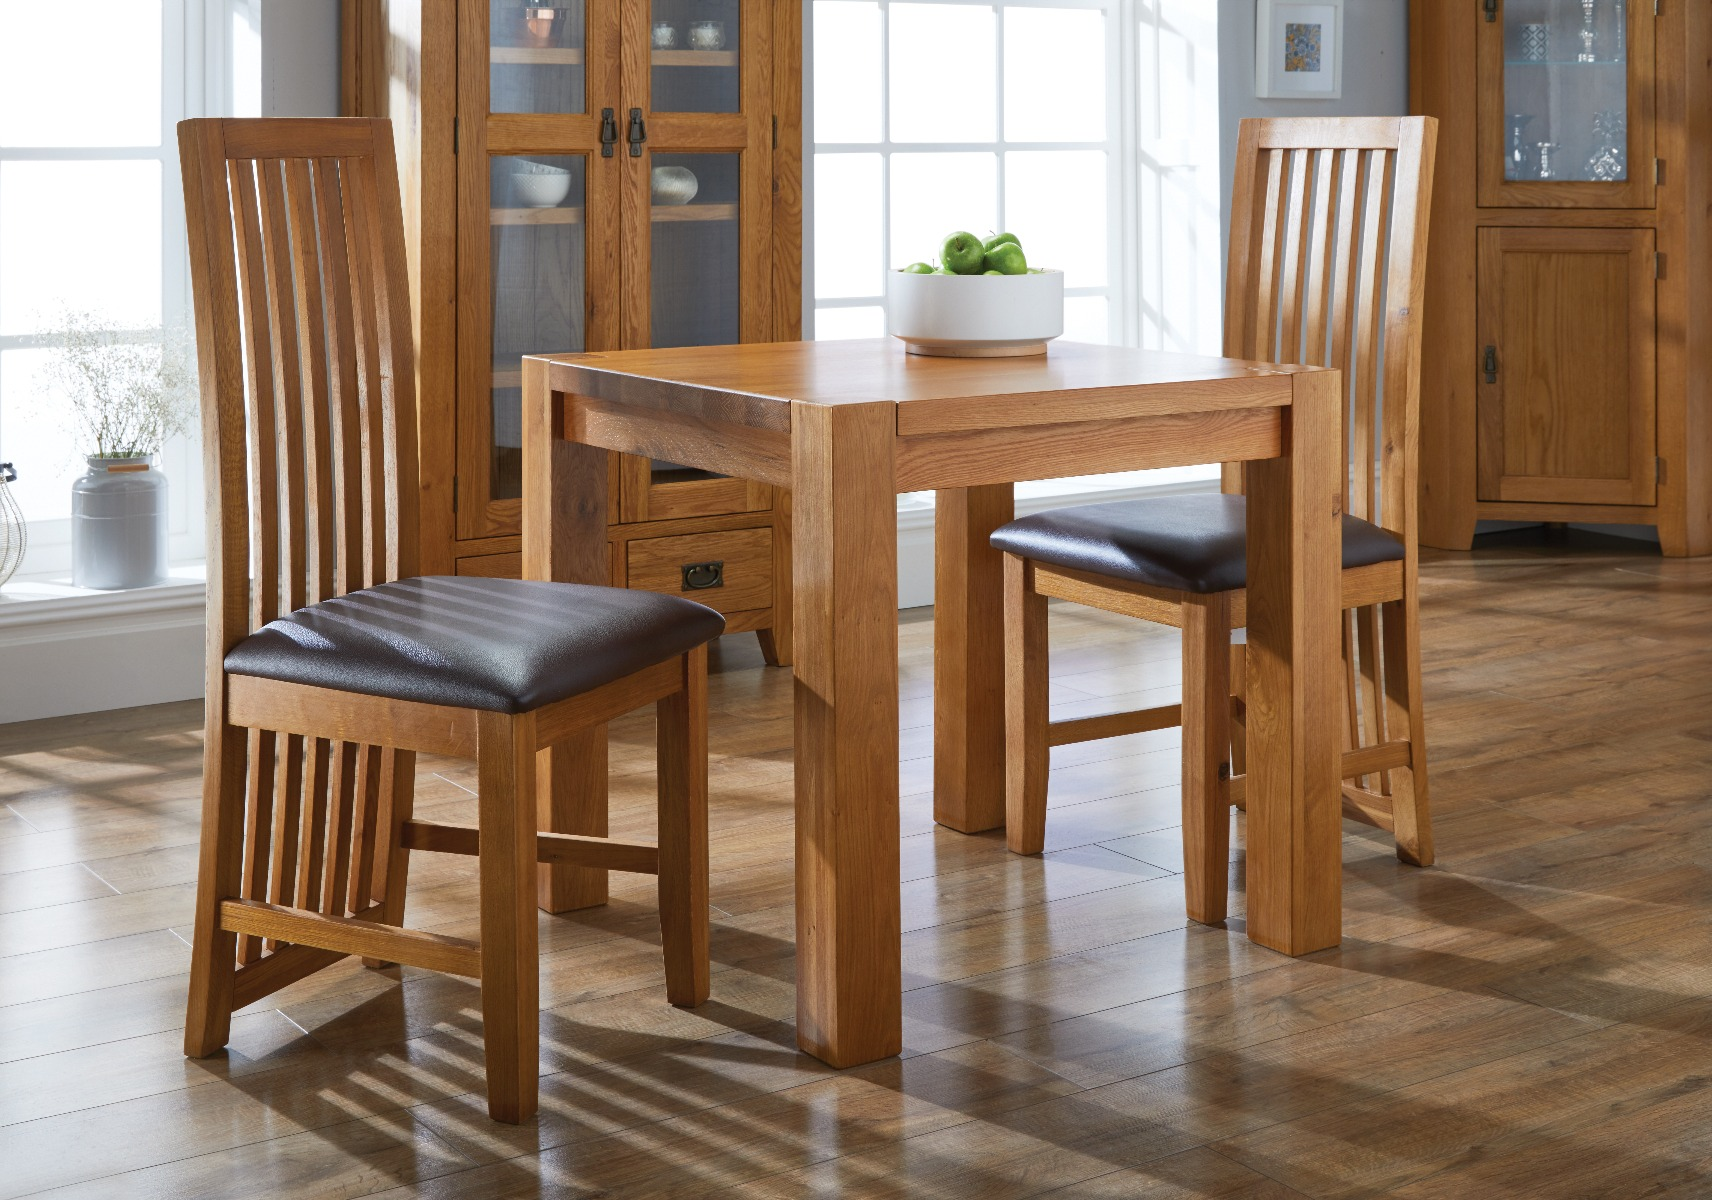 oak dining room furniture country oak range of tables and chairs from Top Furniture